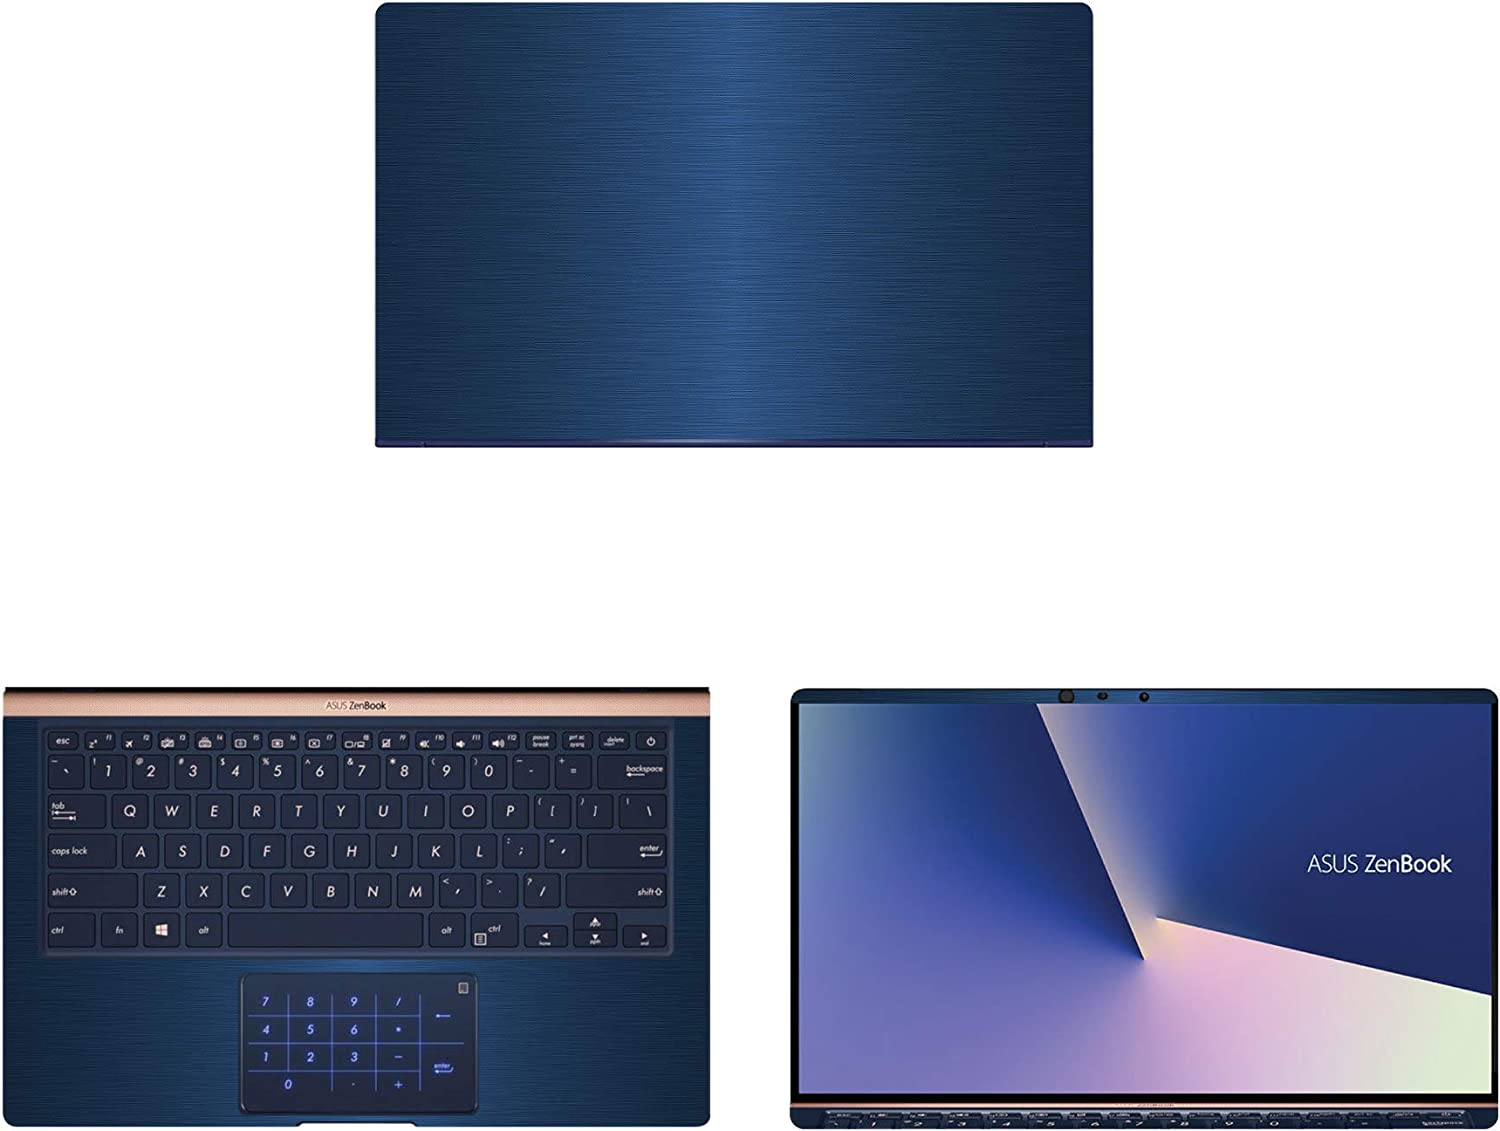 decalrus - Protective Decal for Asus UX333FA NEW before selling All stores are sold ZenBook 13.3